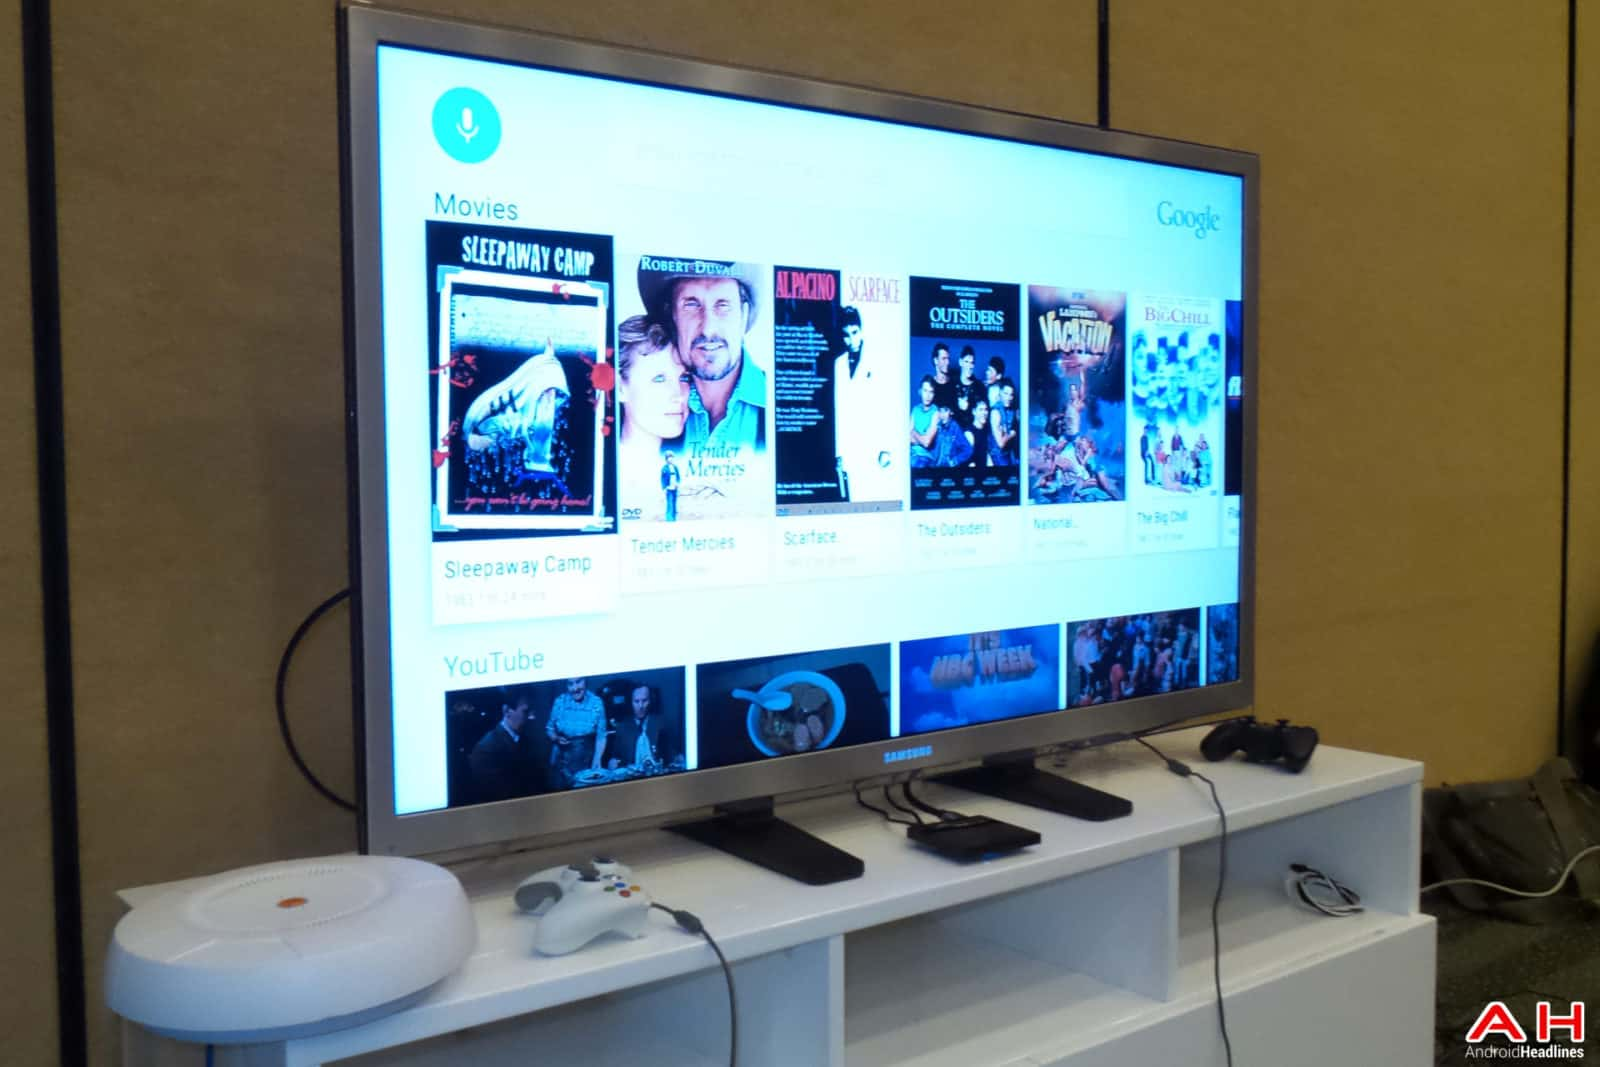 AH Google IO 2014  (1200 of 5) Android TV 3